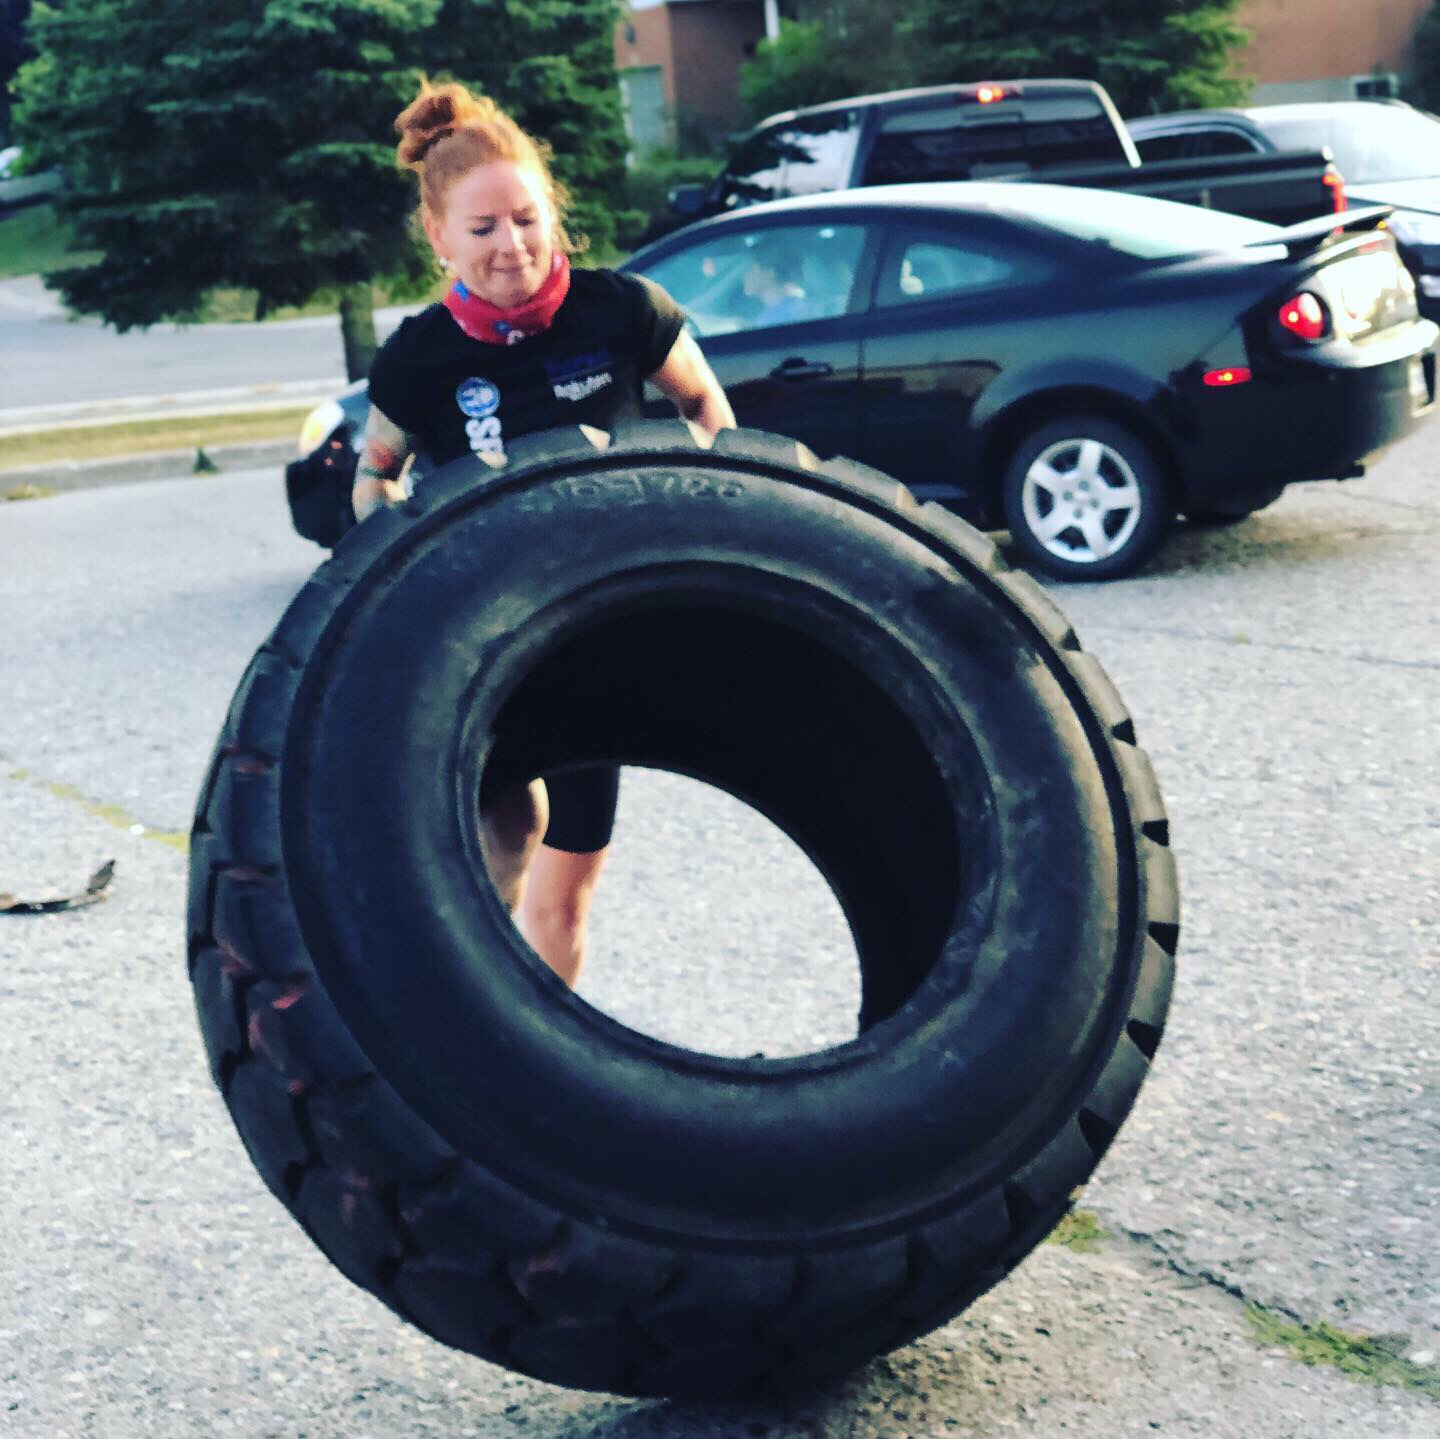 Woman lifting a tire